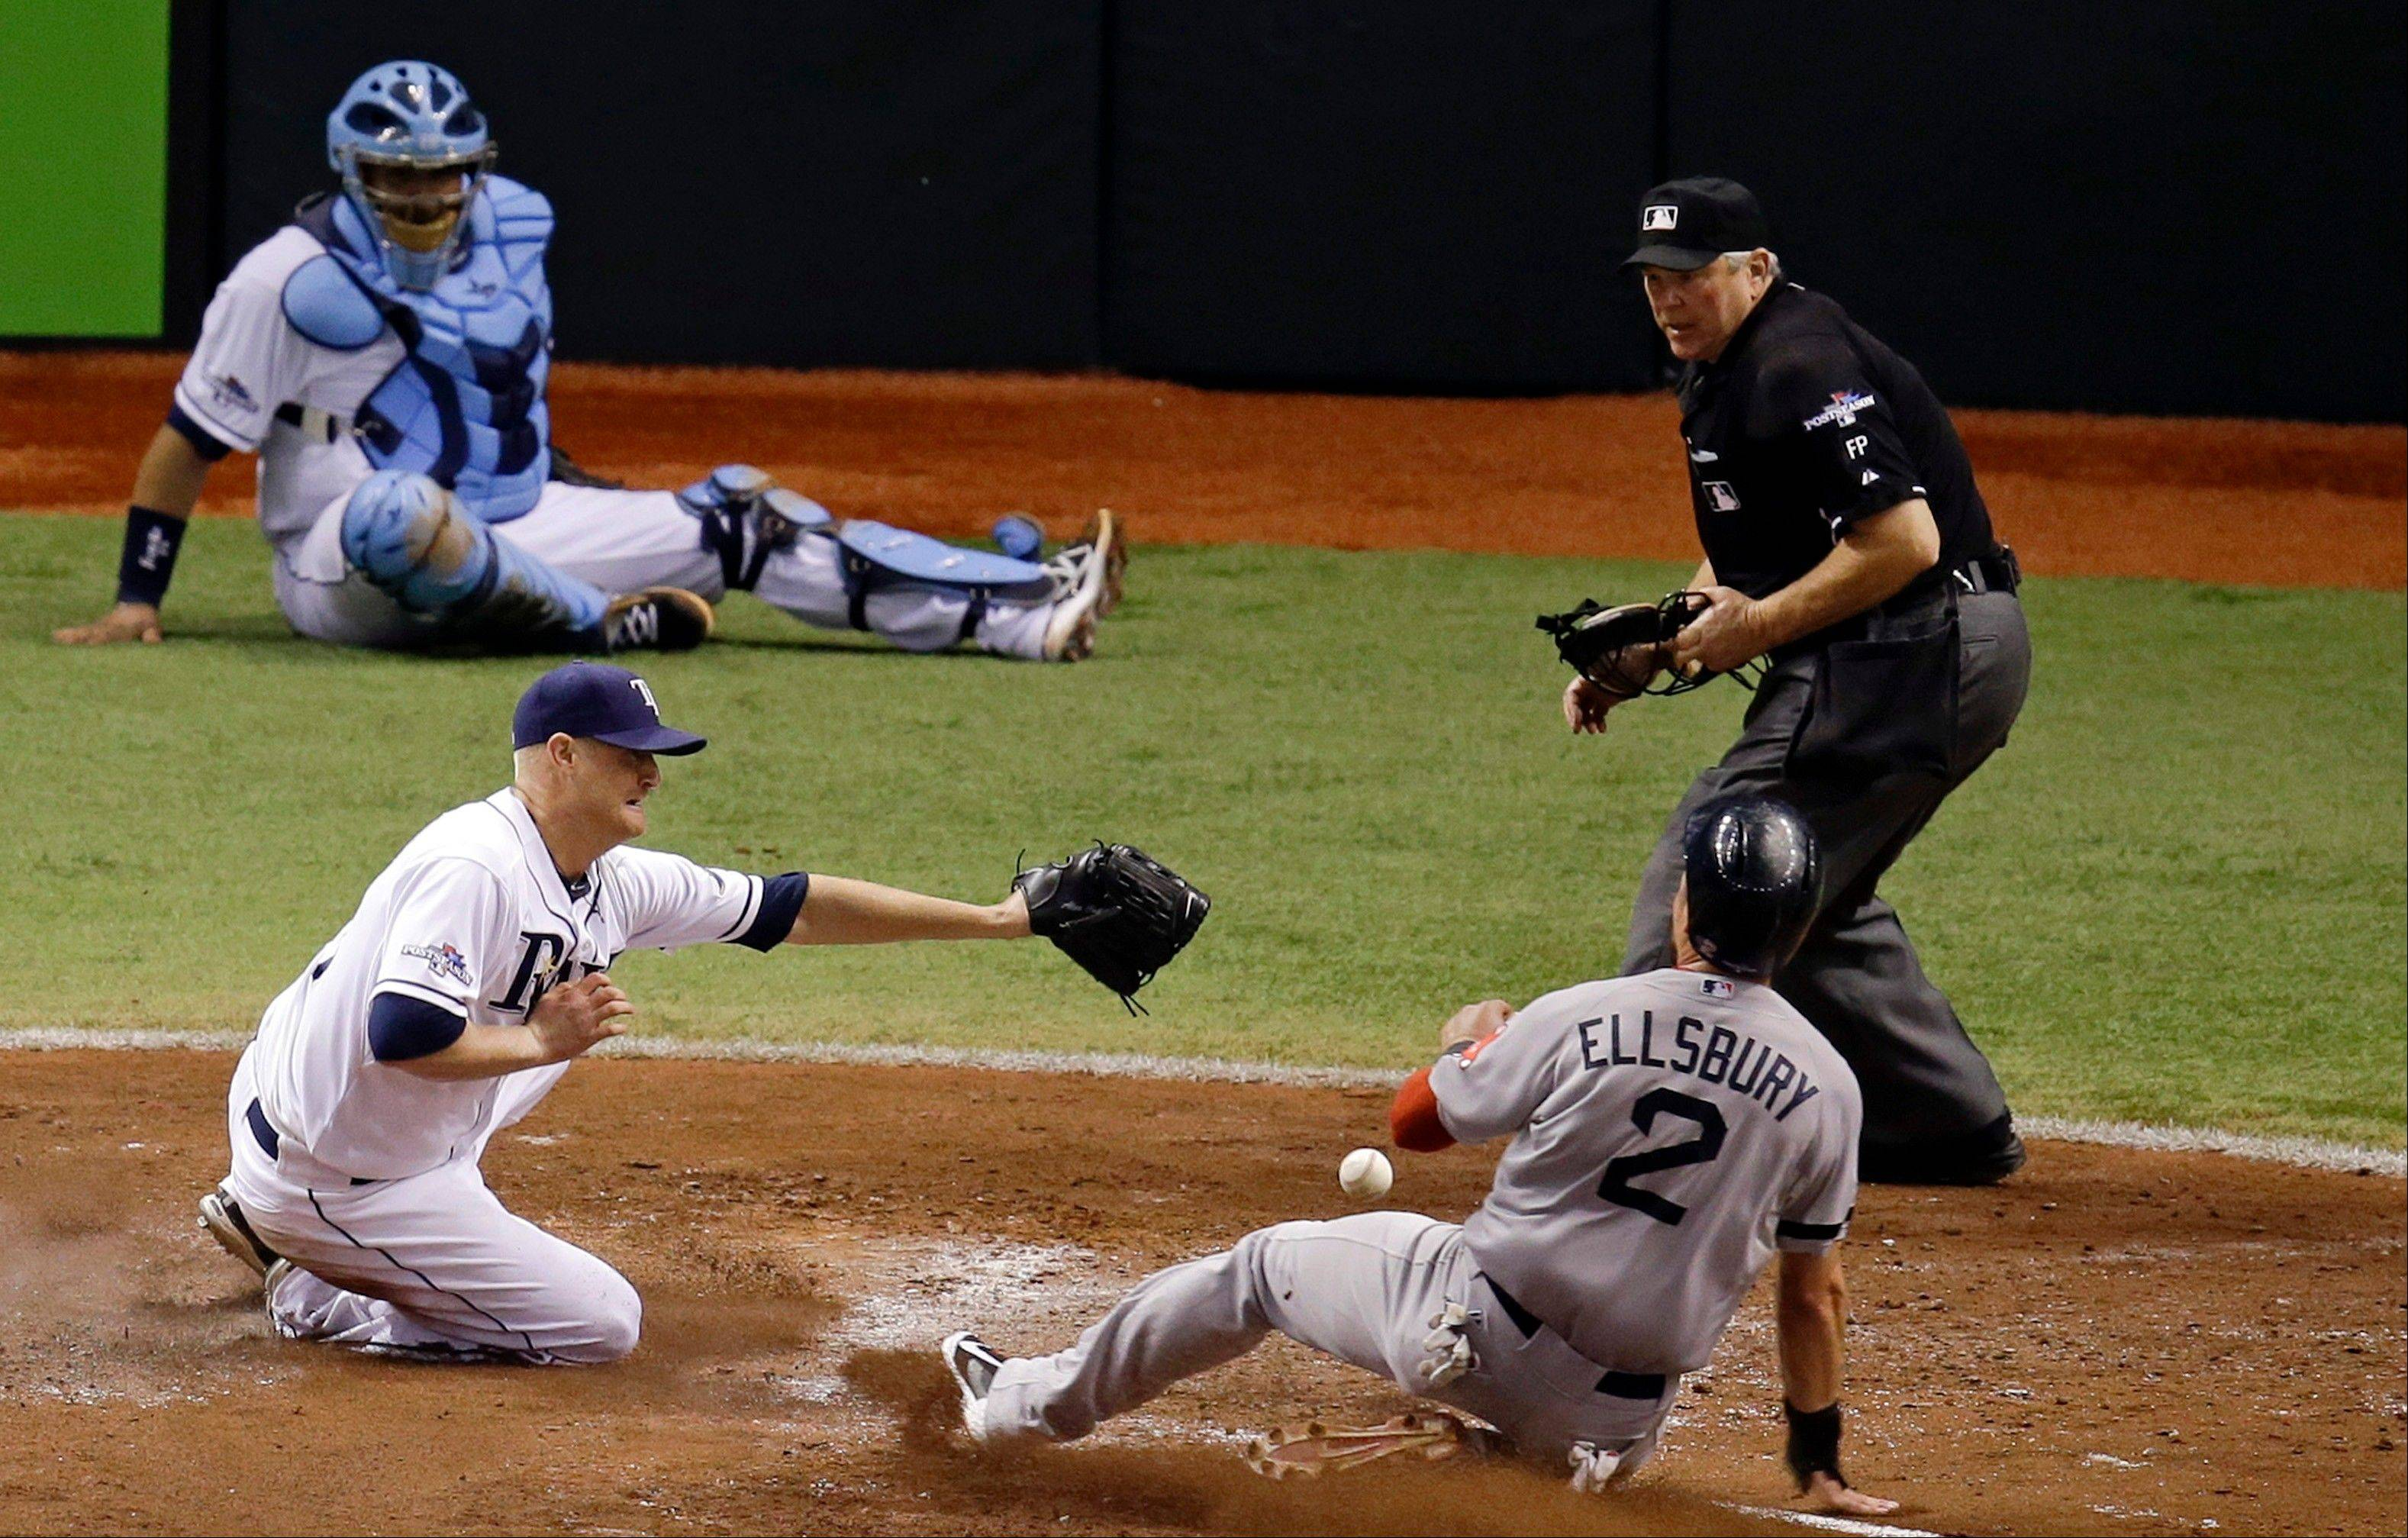 Boston Red Sox center fielder Jacoby Ellsbur slides into home after a wild pitch by Tampa Bay Rays pitcher Alex Cobb during Game 3 of an American League Division Series in St. Petersburg, Fla.